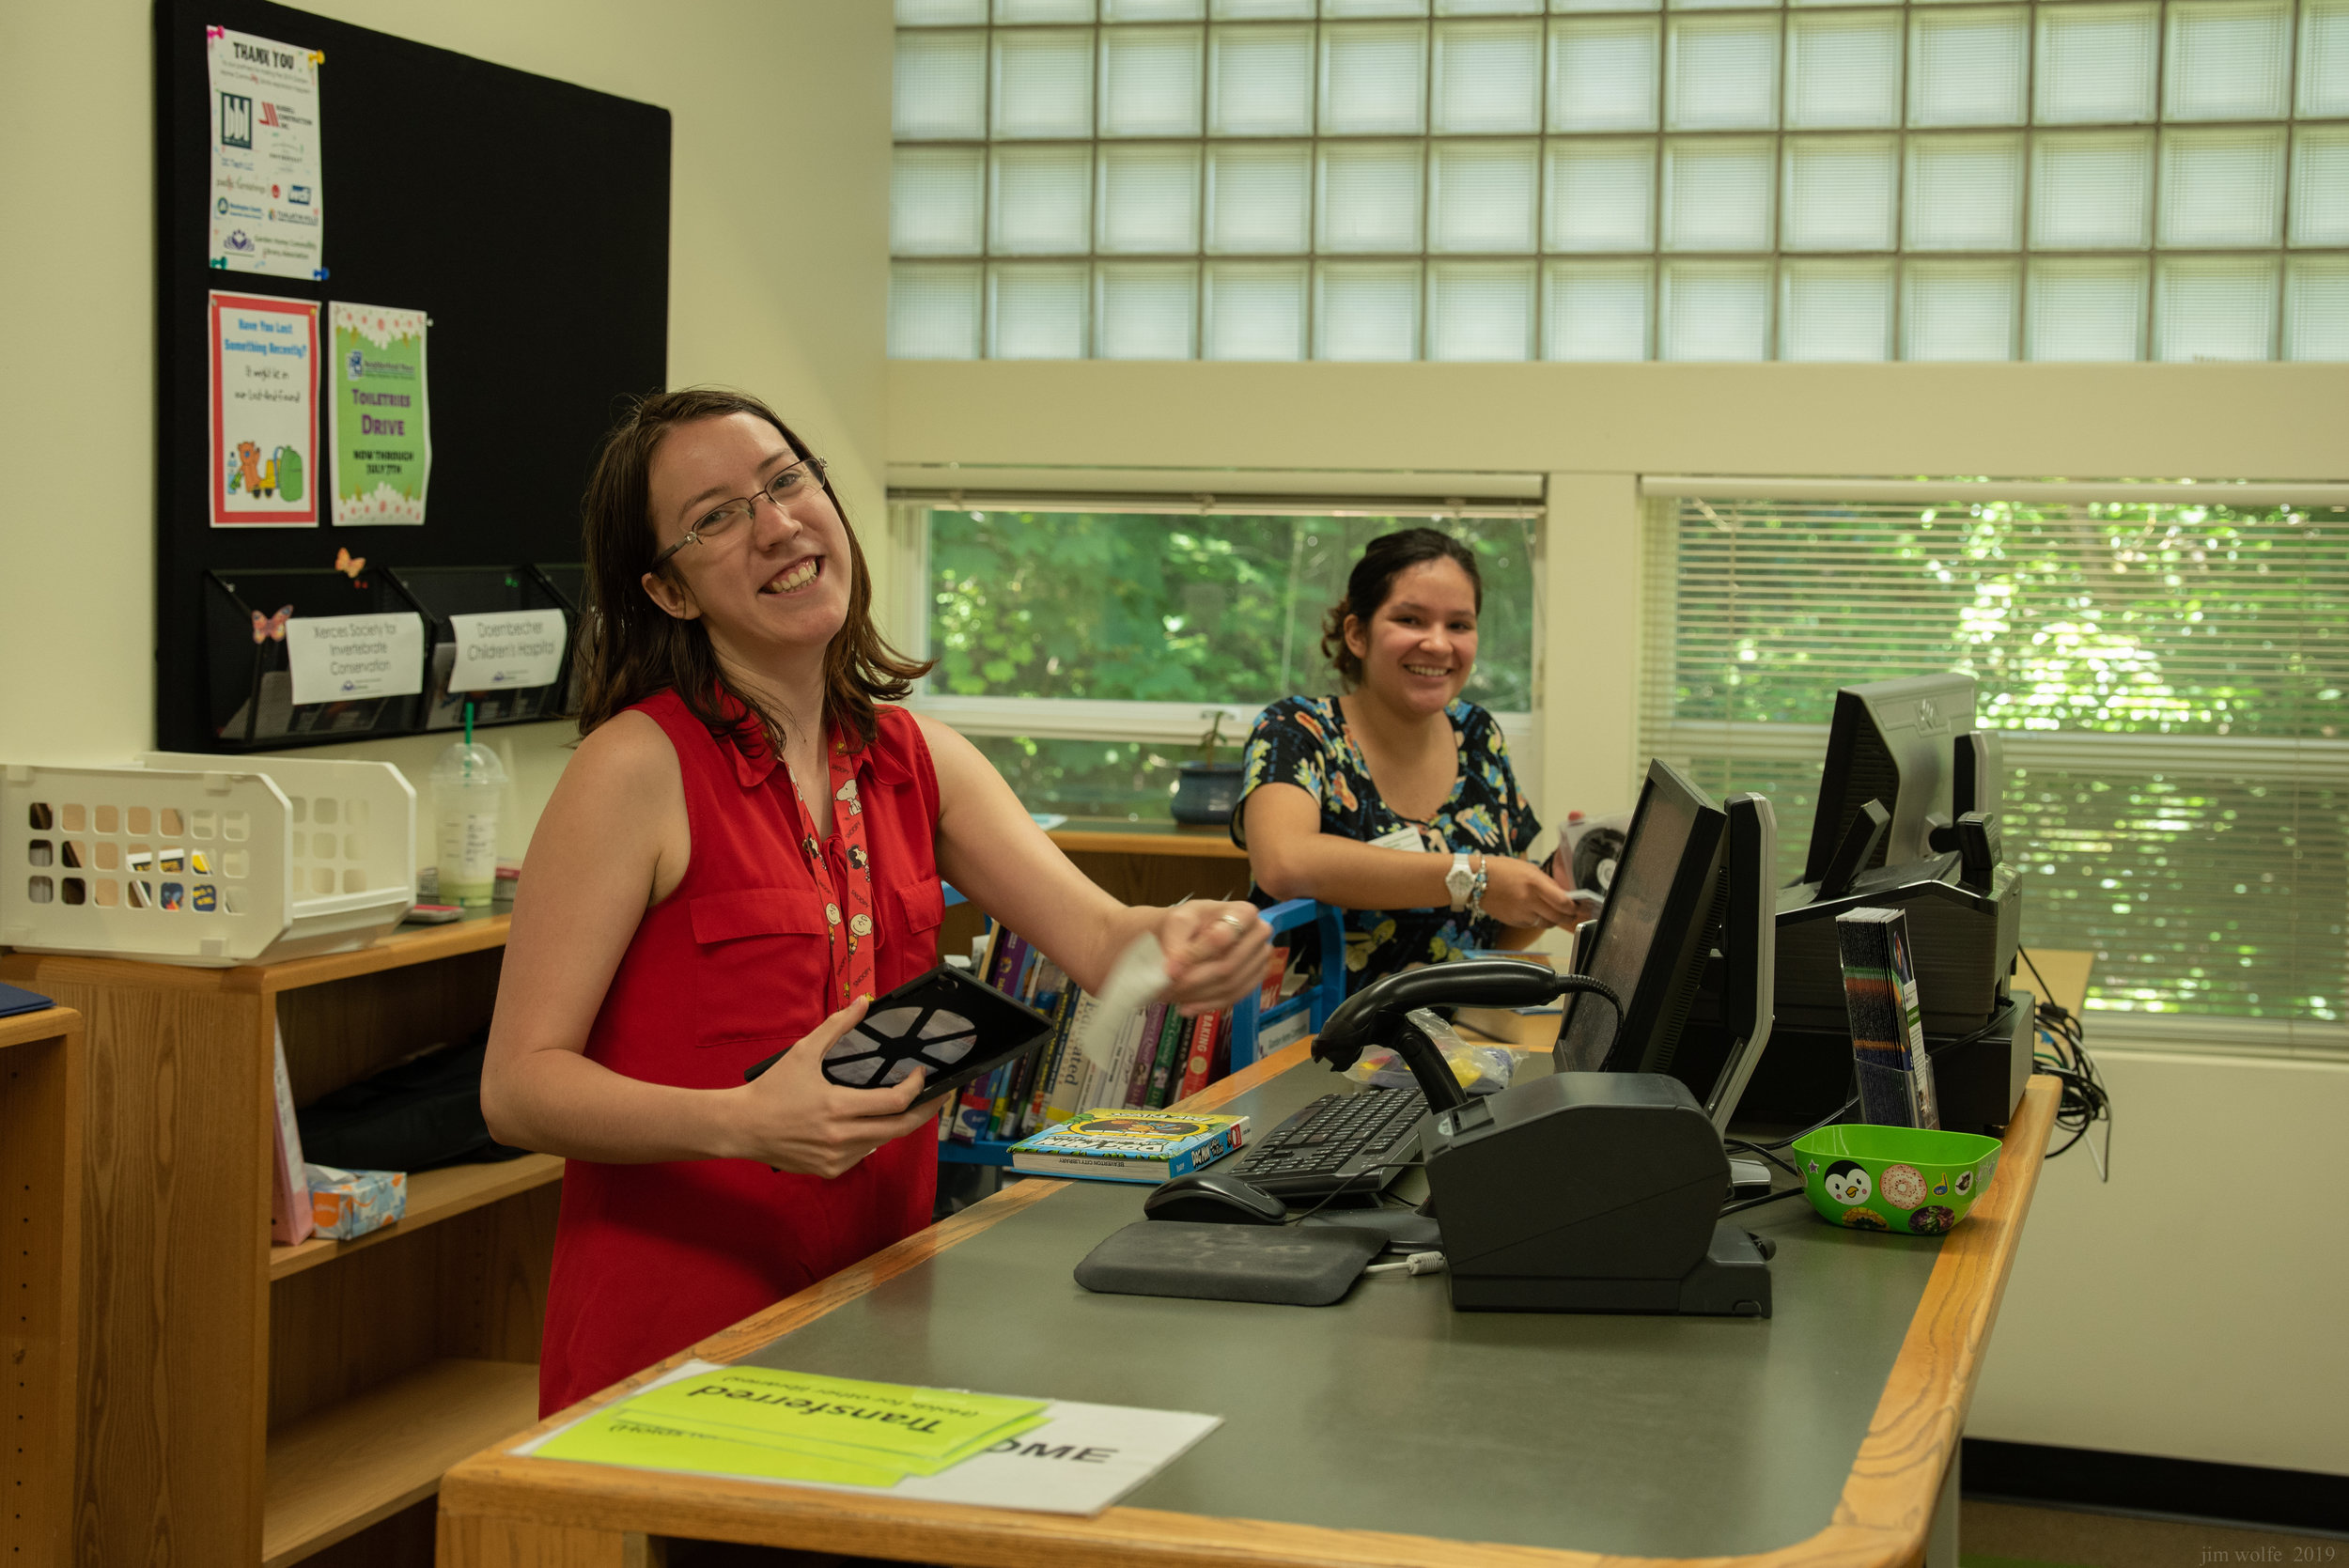 Staff Members Julie Winczewski and Jocelyn Santos at the circulation desk.